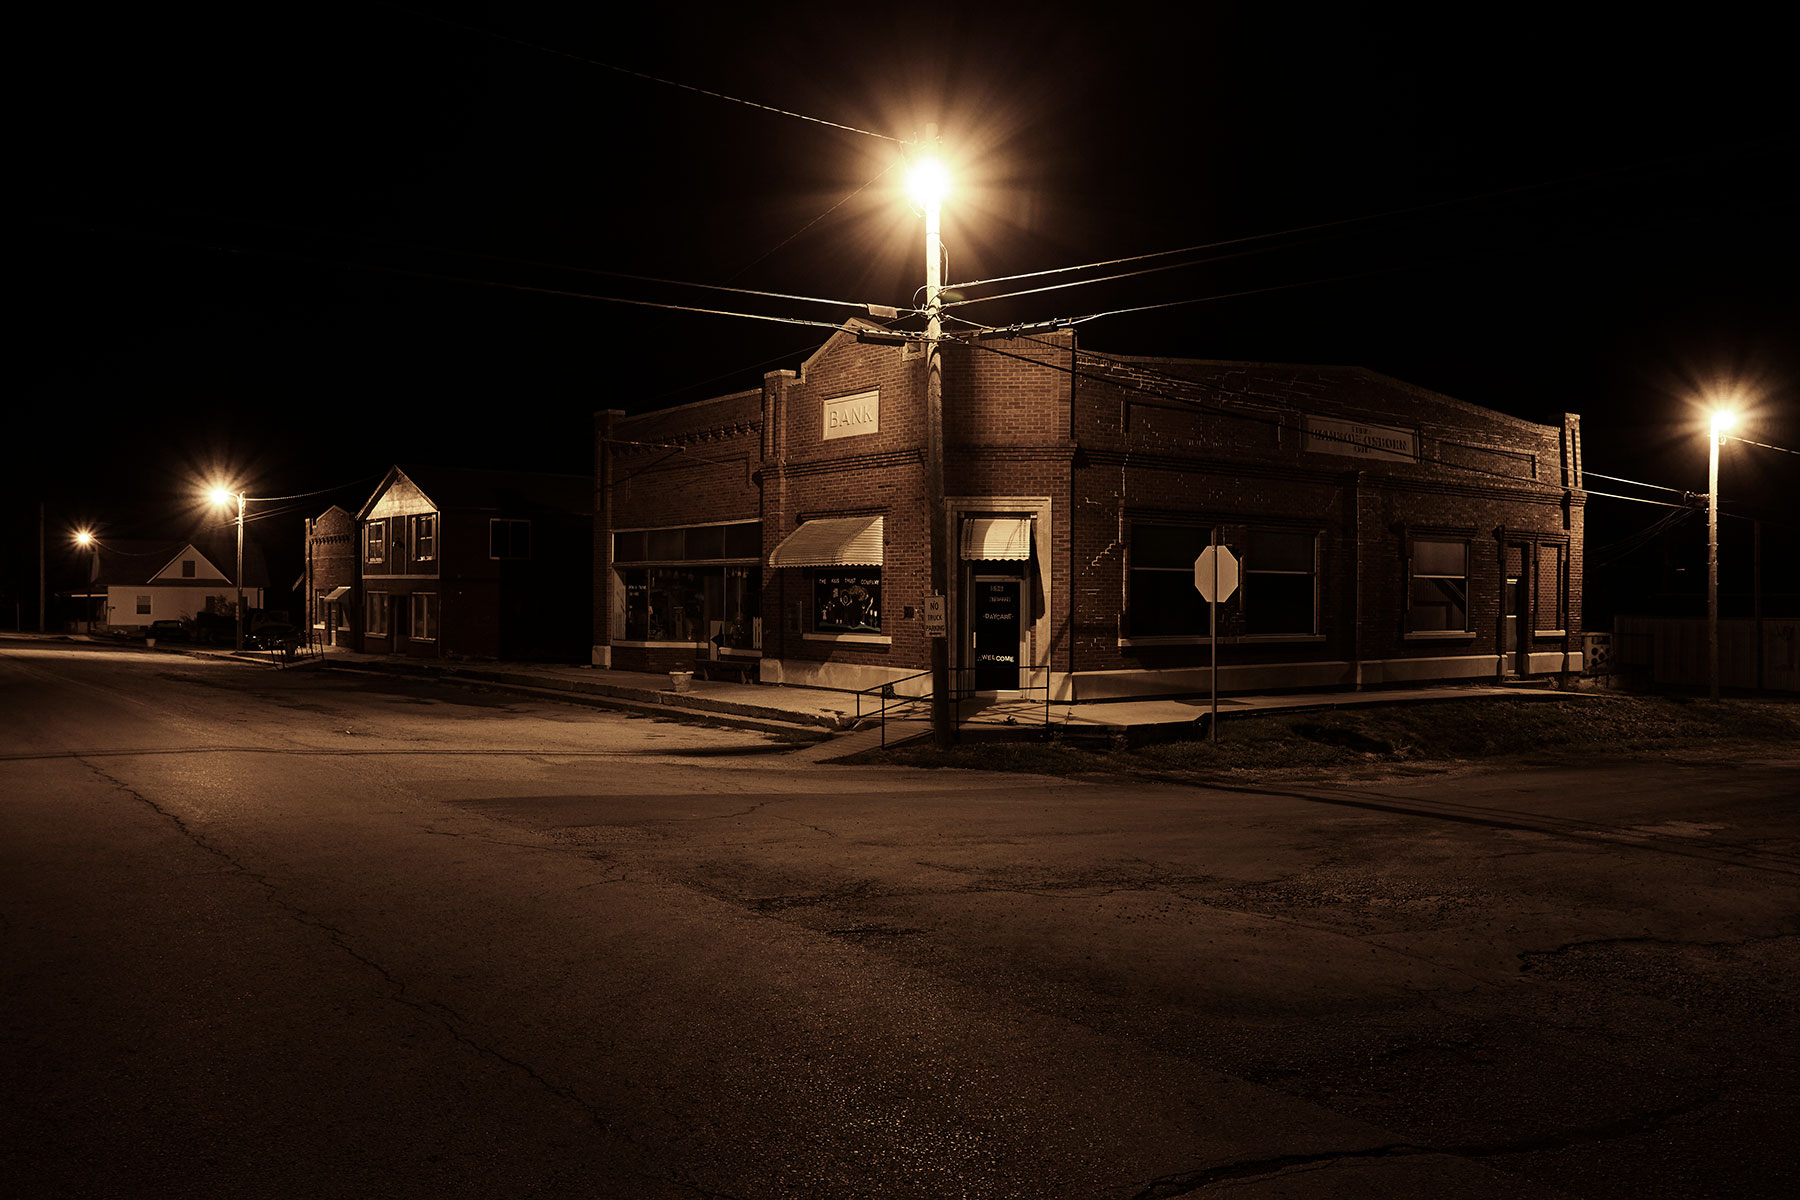 Matt Hoover Night Photography